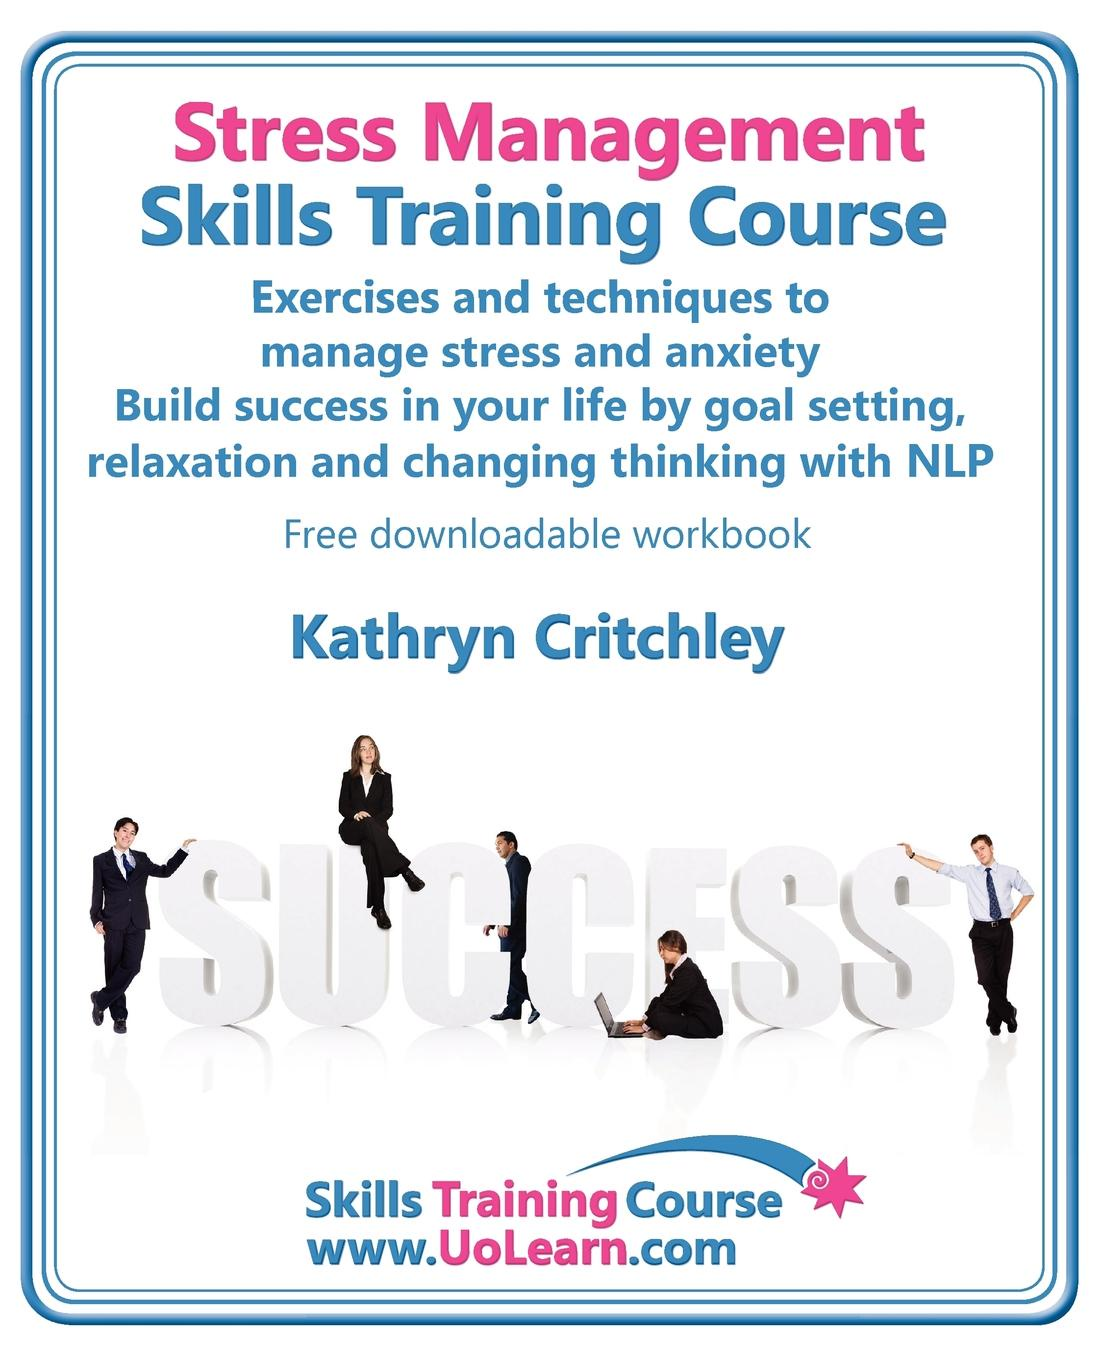 Kathryn Critchley Stress Management Skills Training Course. Exercises and Techniques to Manage Stress and Anxiety. Build Success in Your Life by Goal Setting, Relaxatio fashion gyro stress reliever pressure reducing toy for office worker